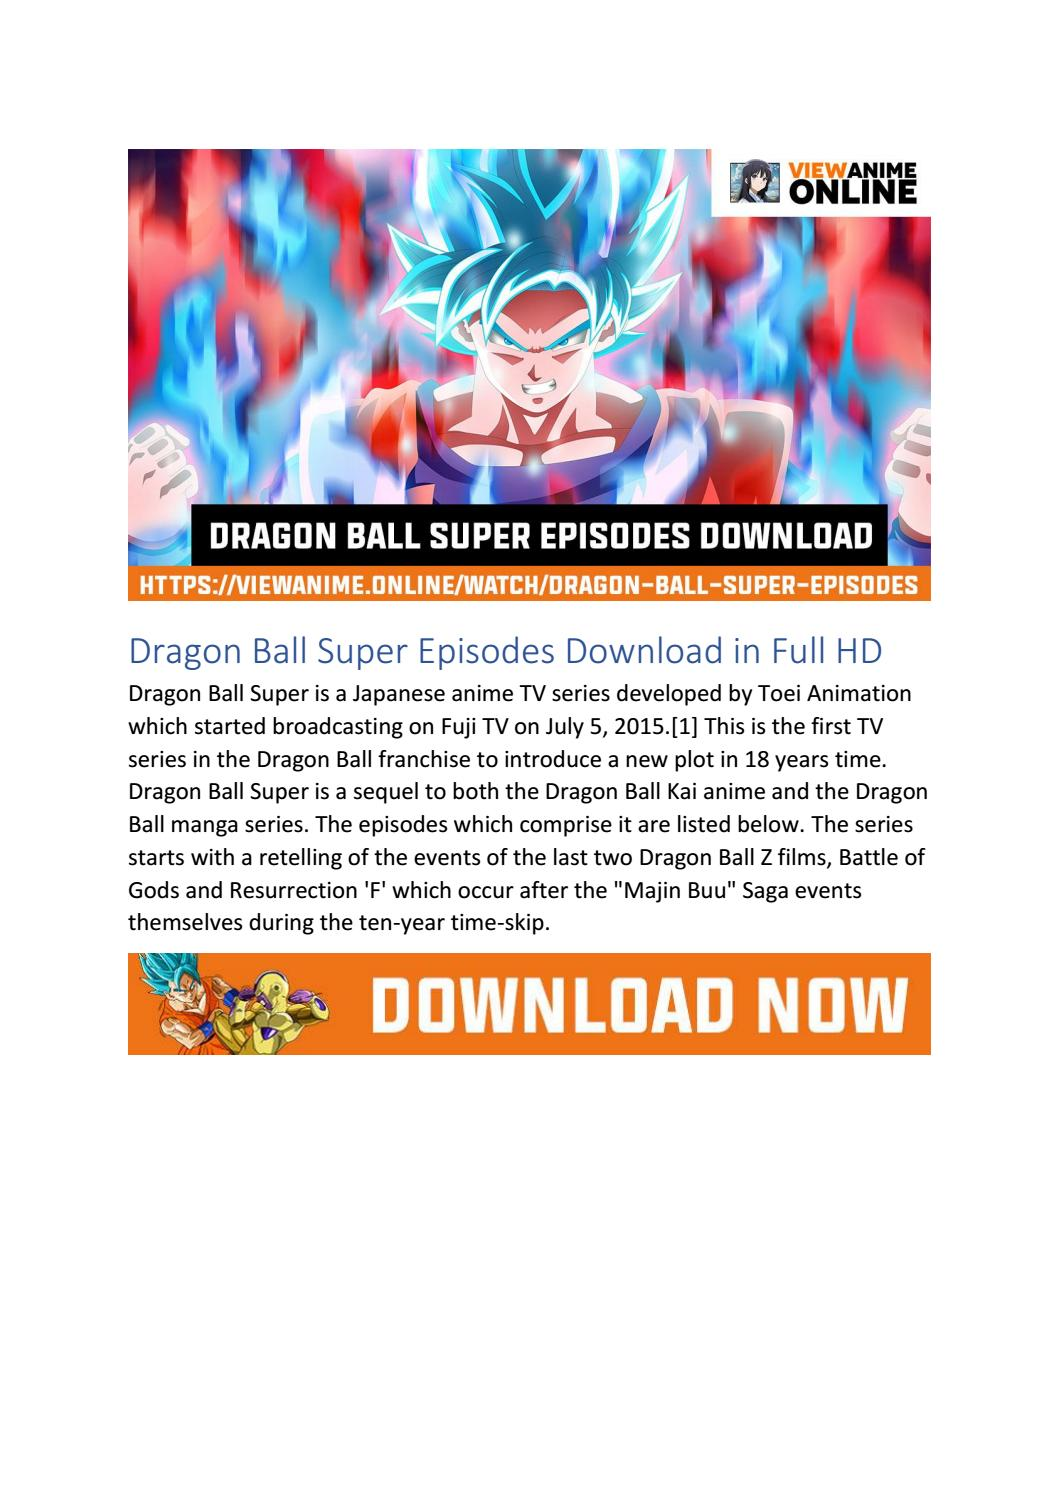 Free Dragon Ball Super Episodes Download In Full Hd By Cezar